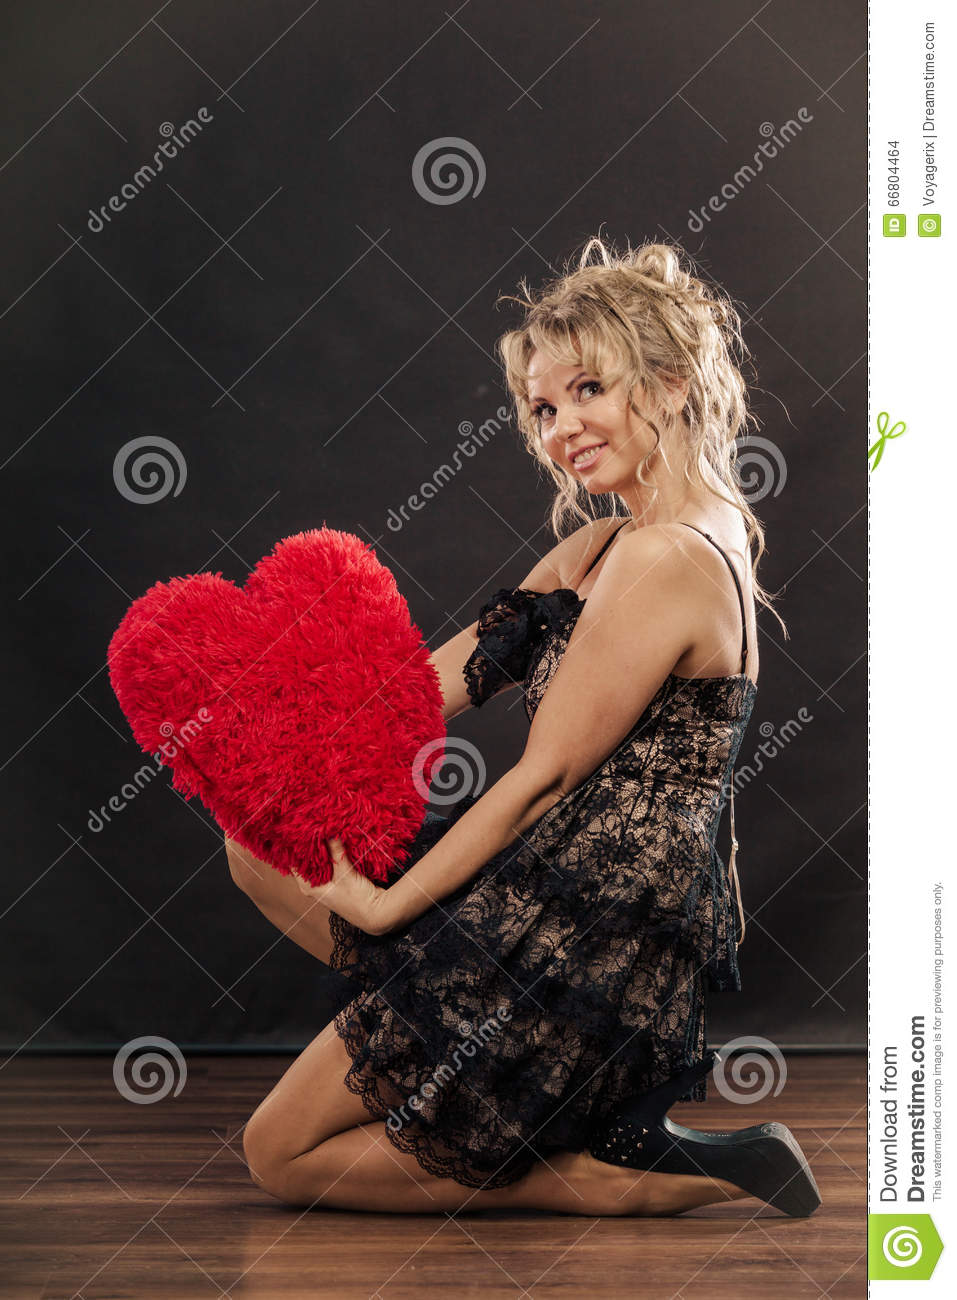 mature woman hug big red heart stock photo - image of love, black